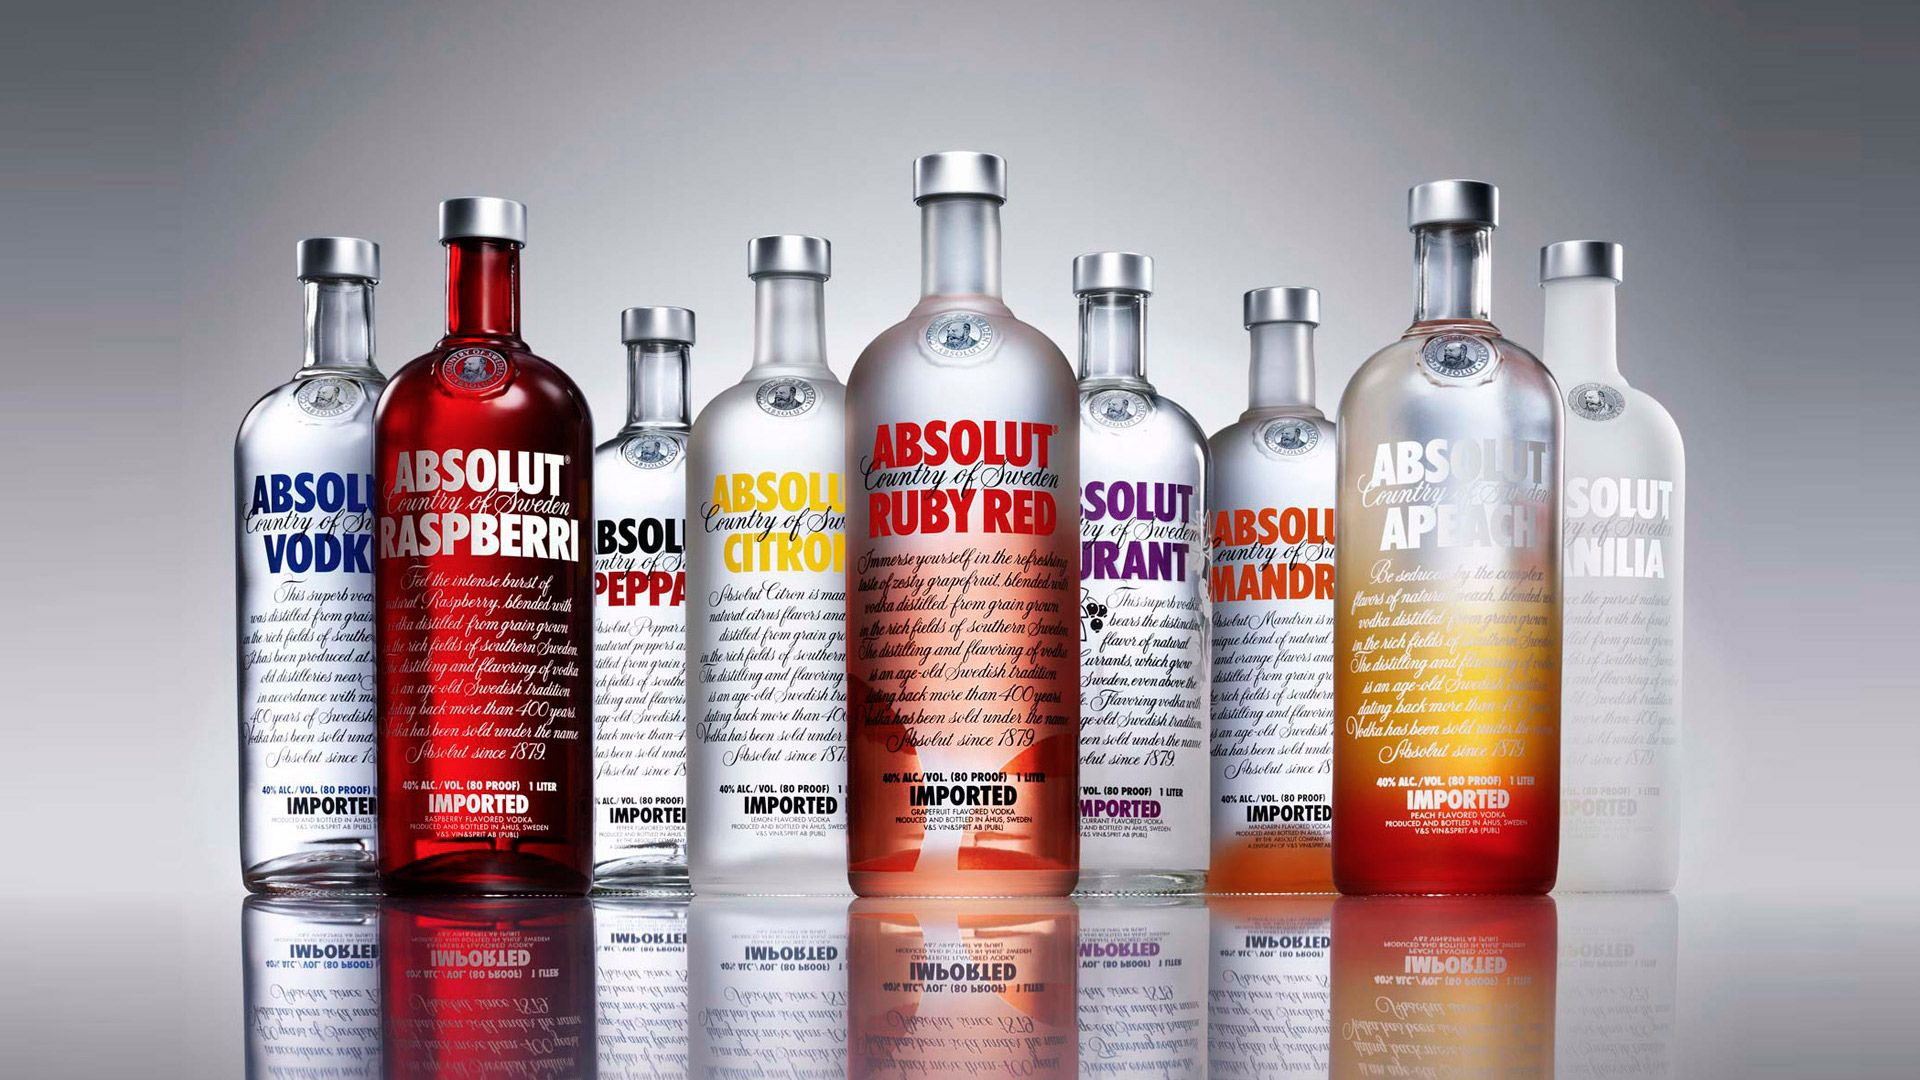 Wallpaper iphone vodka - Absolut Vodka Hd Wallpaper In Full Hd From The Brands Category